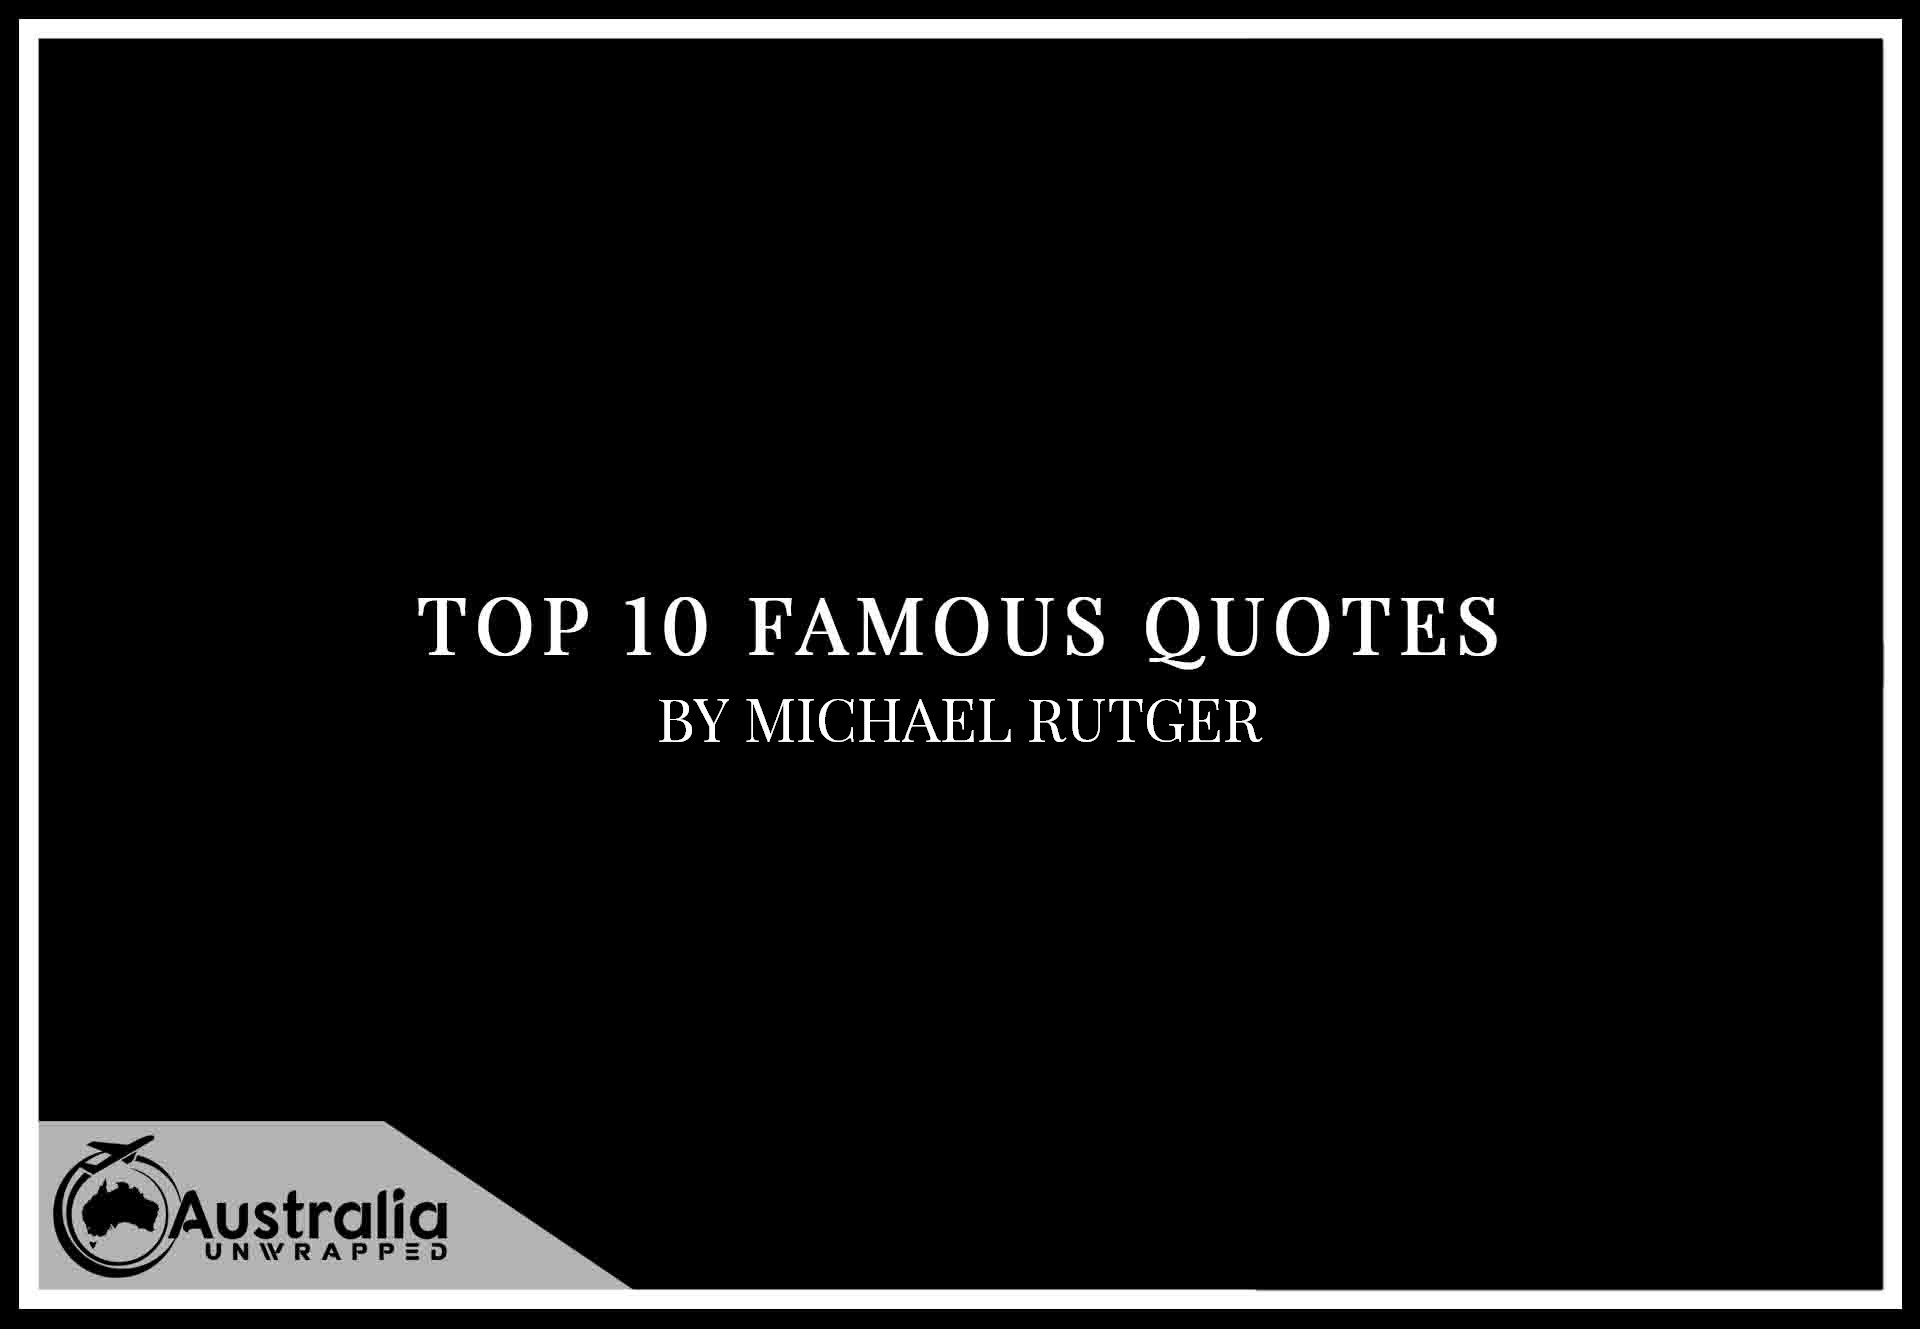 Top 10 Famous Quotes by Author Michael Rutger